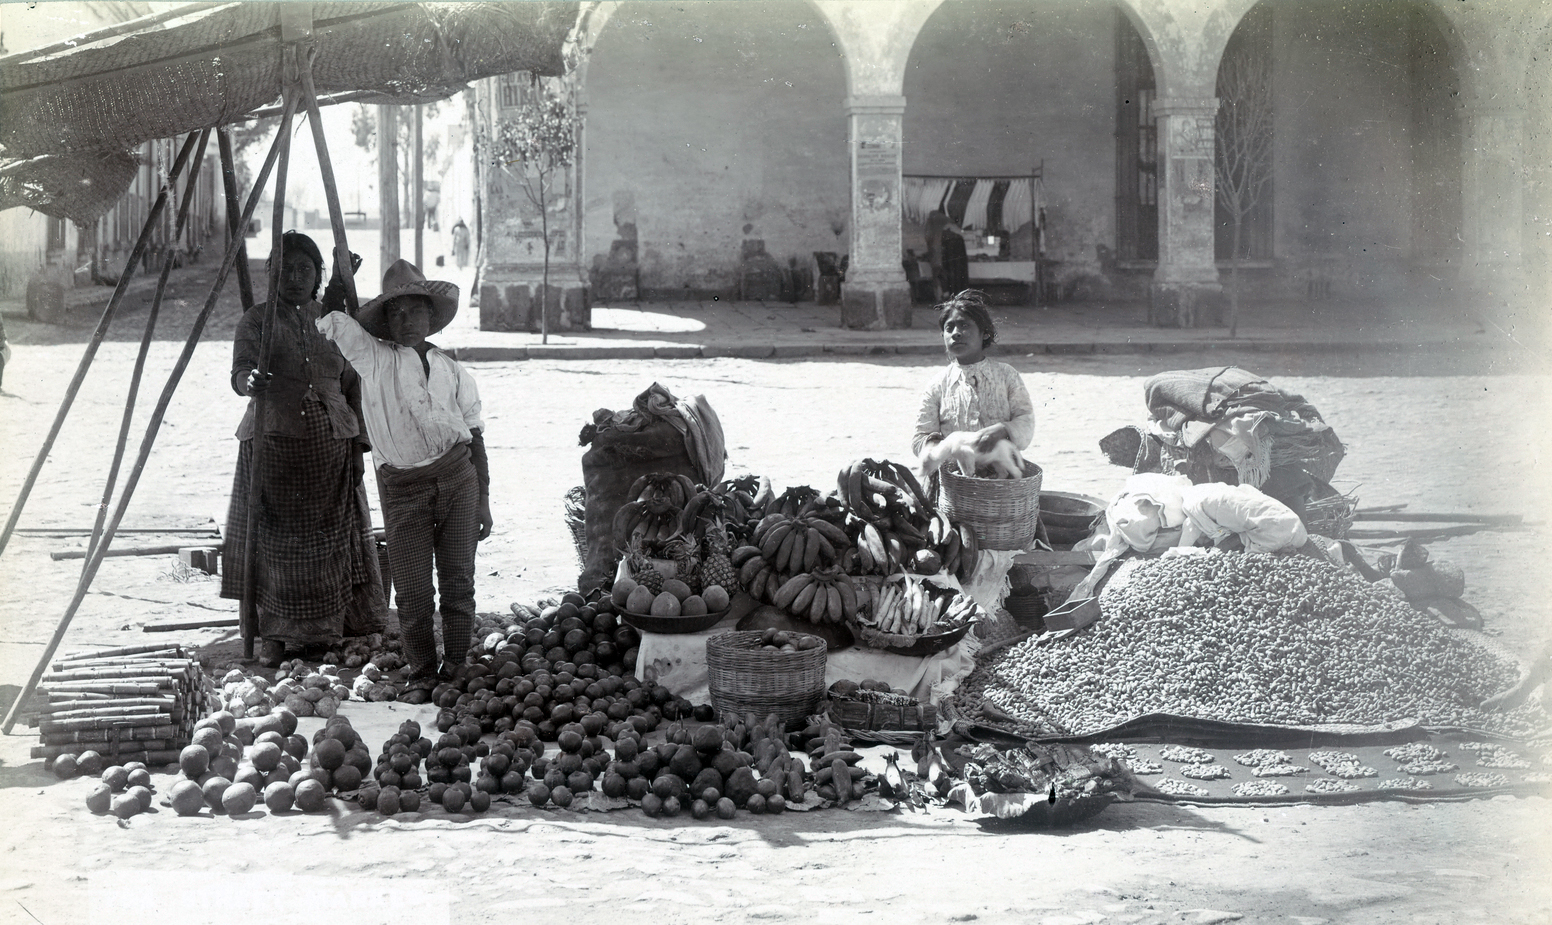 Fruit Vendor, Mexico, 1890, Courtesy of the New York Public Library